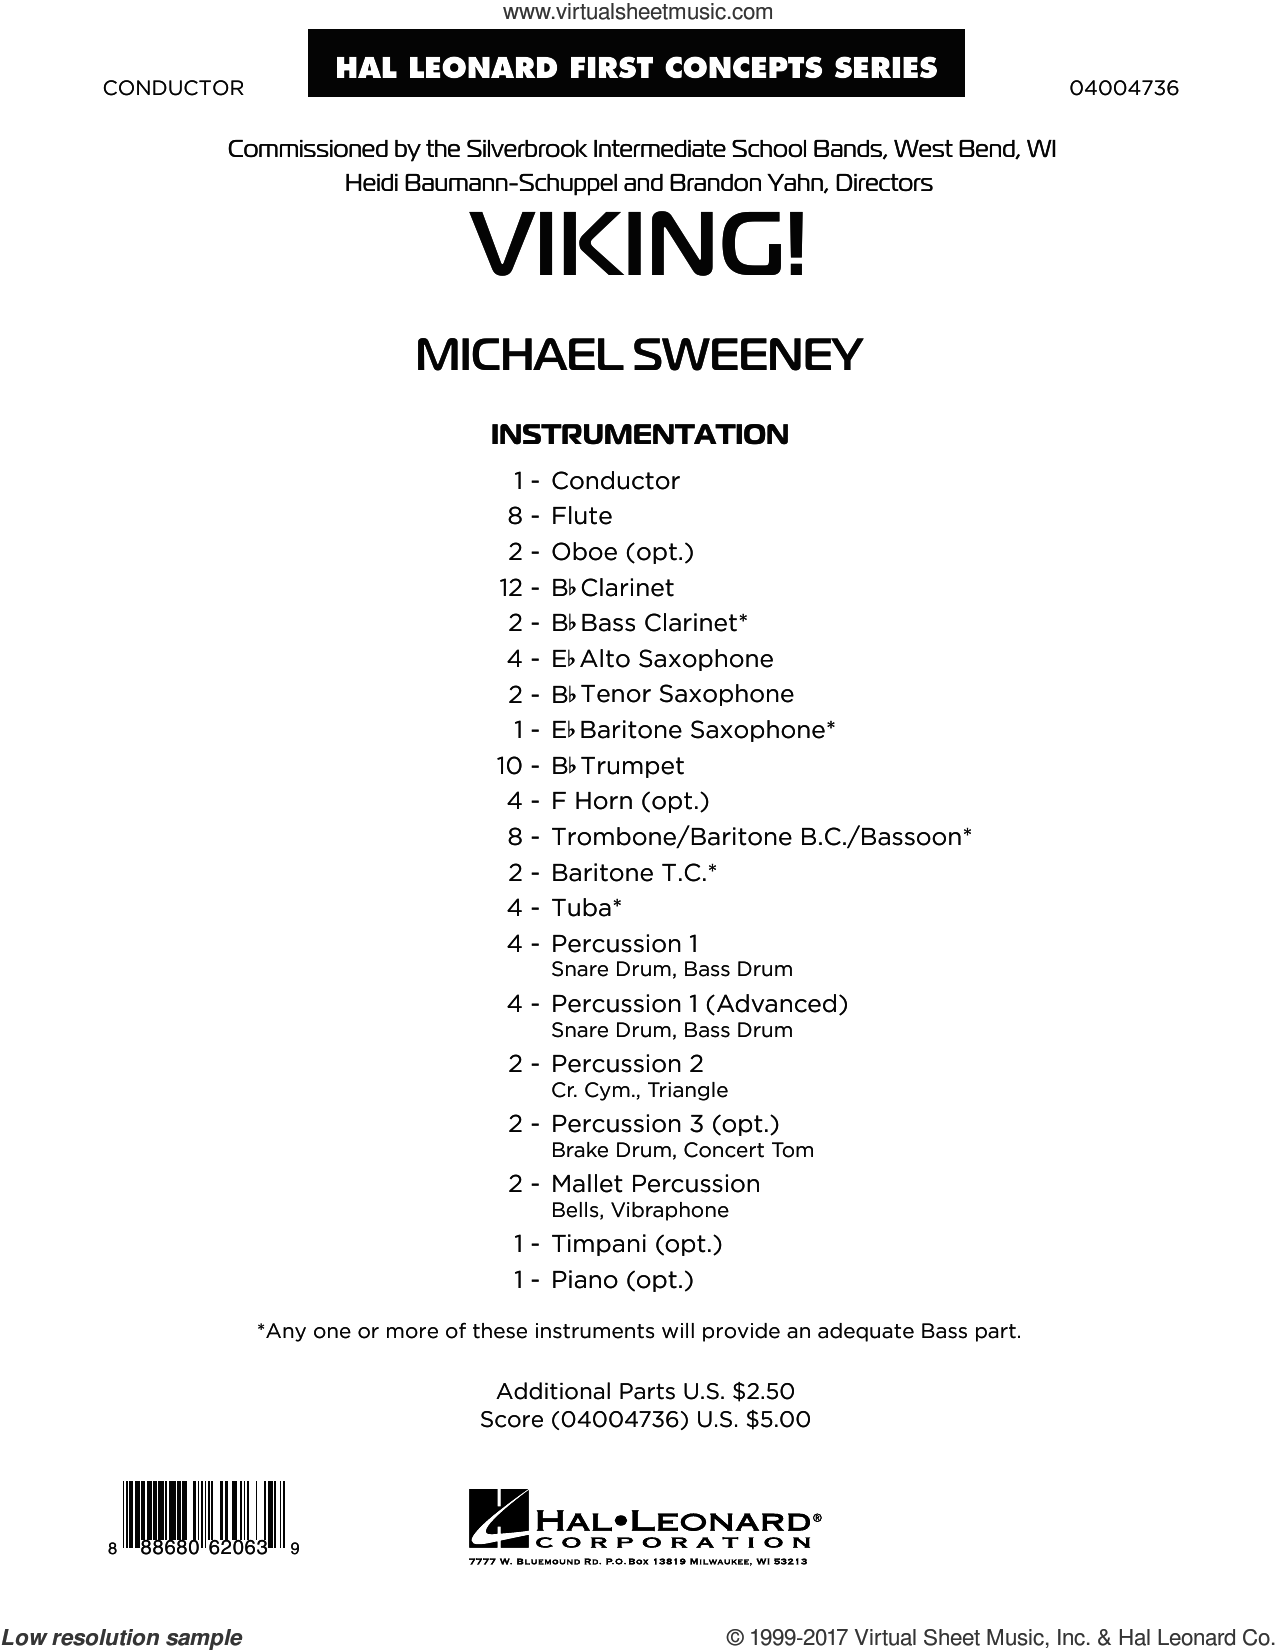 Viking! (COMPLETE) sheet music for concert band by Michael Sweeney, intermediate